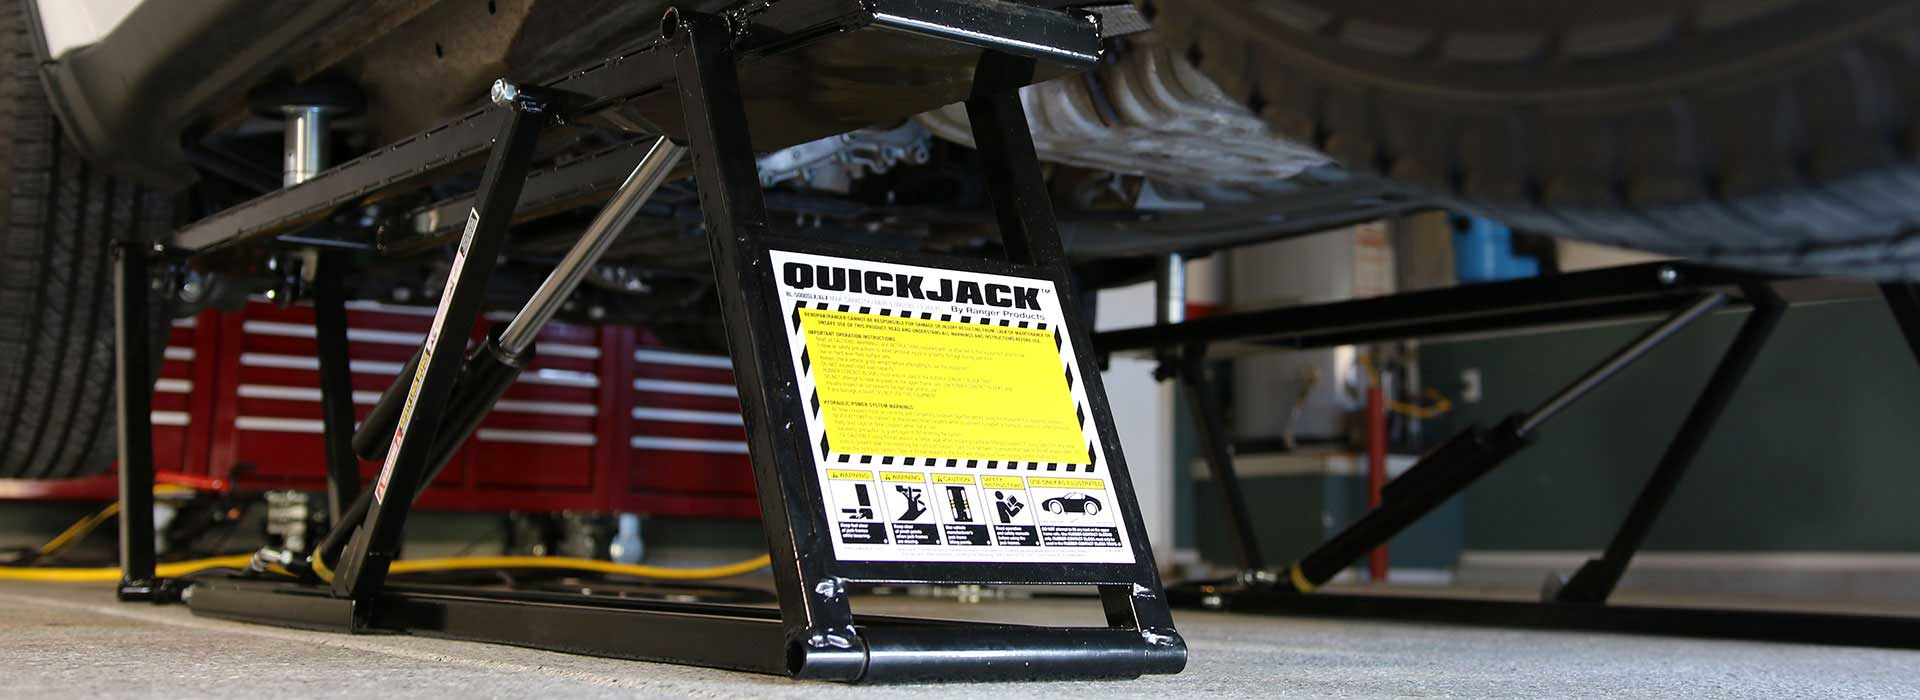 home garage lift quickjack canada portable car lift system for home 123